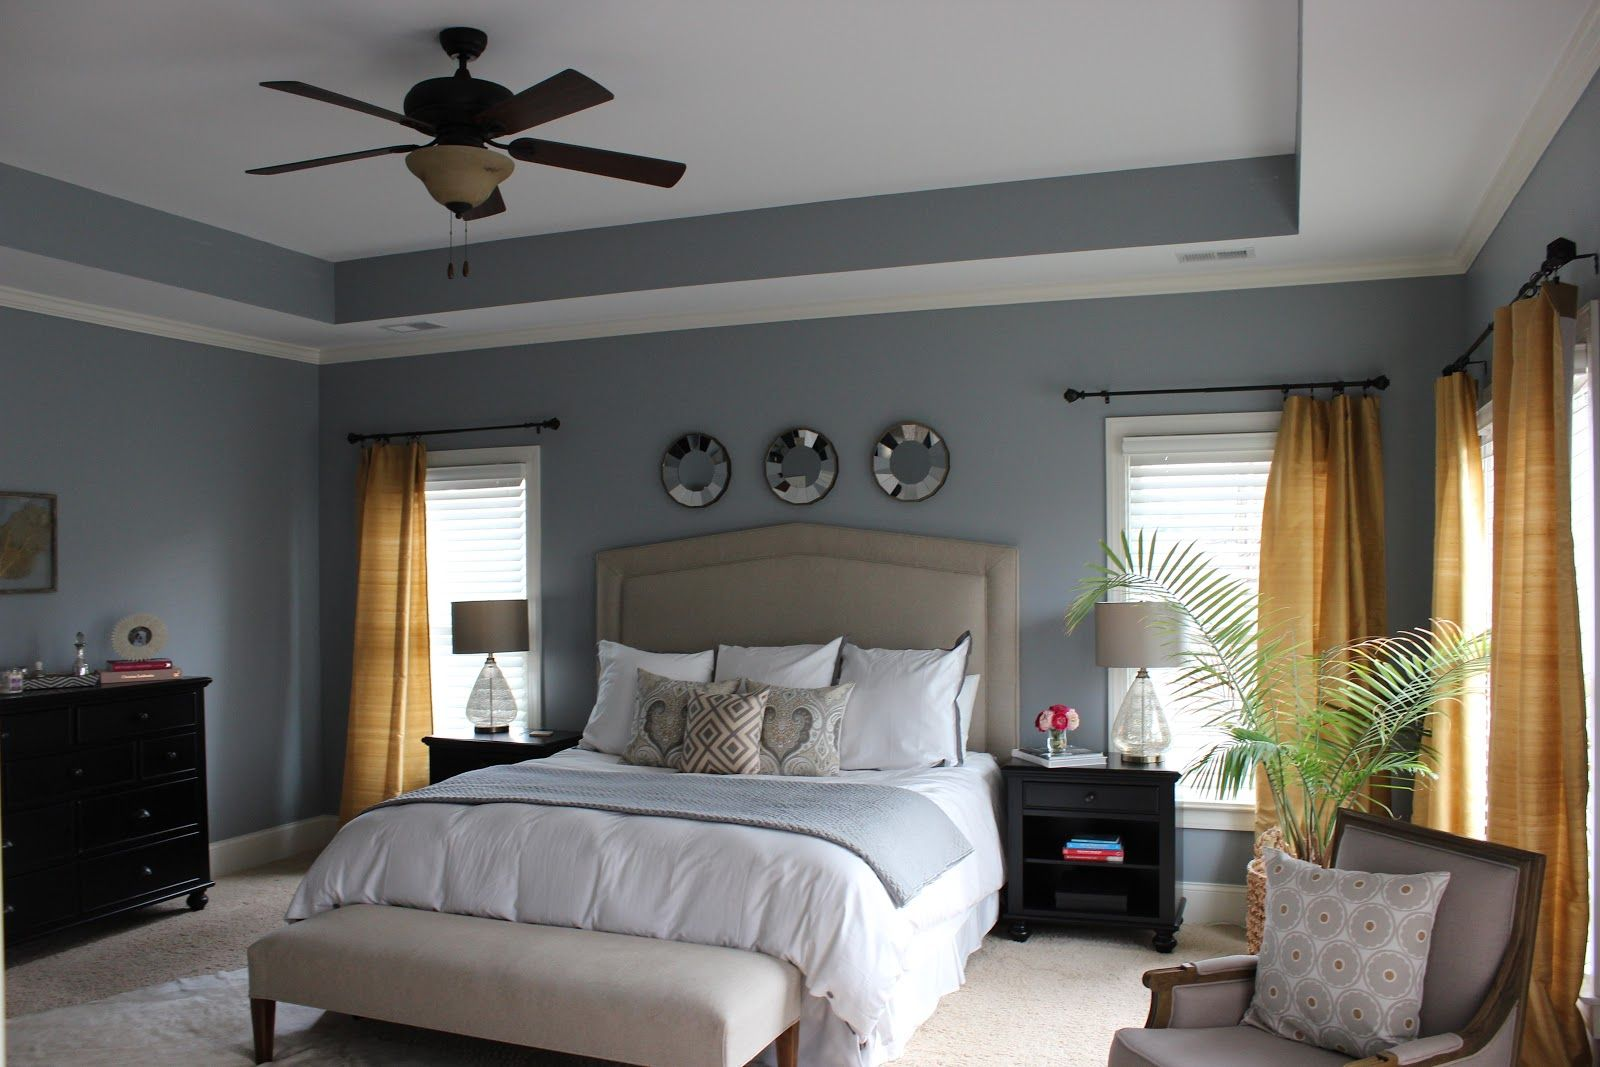 Benjamin moore gull wing grey walls great master bedroom Bedroom ideas grey walls